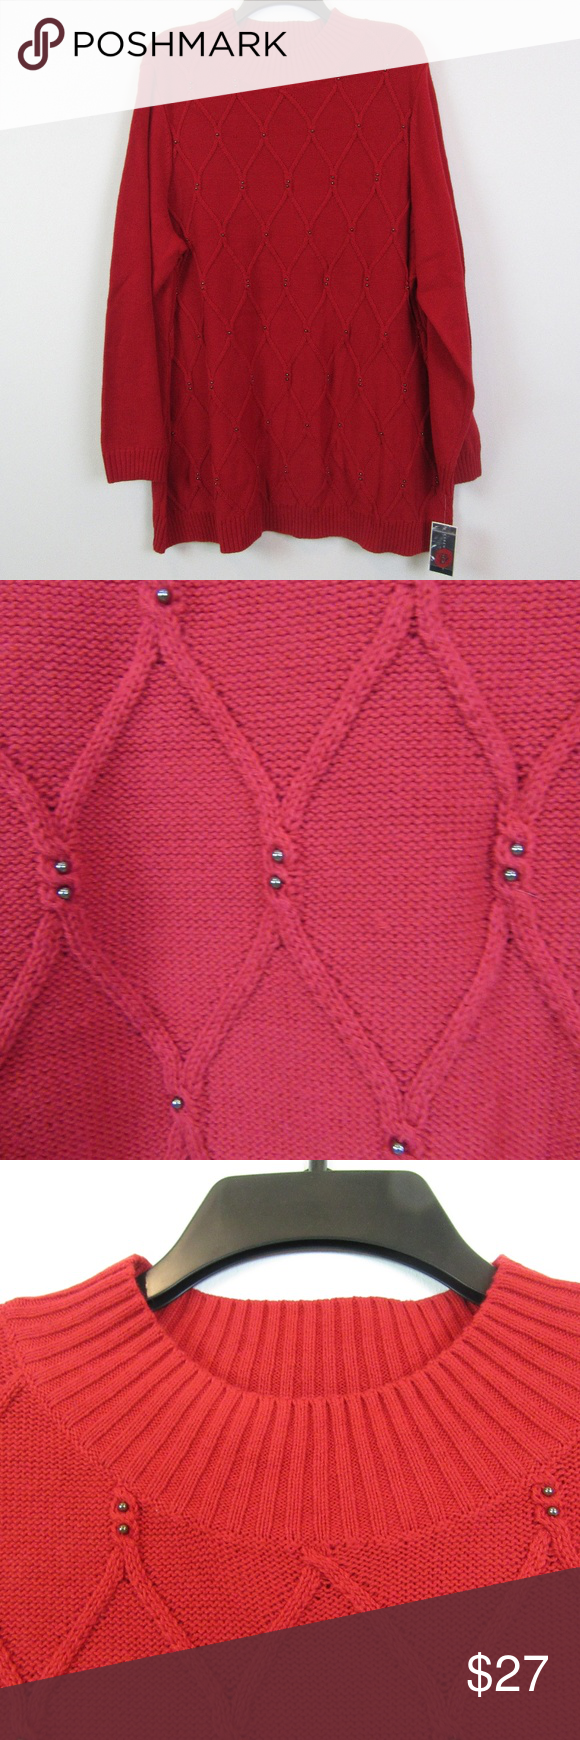 """Karen Scott 2X Red Sweater NEW L2-F3-03 Brand: Karen Scott  Size: 2X Color: New Red Amore Fabric: 60% Cotton Care Instructions: Machine Washable Details: Beaded Cable knit Front  Measurements taken by hand and are approximate: Bust: 26-27"""" Length From Shoulder: 30-31"""" Karen Scott Sweaters Crew & Scoop Necks"""